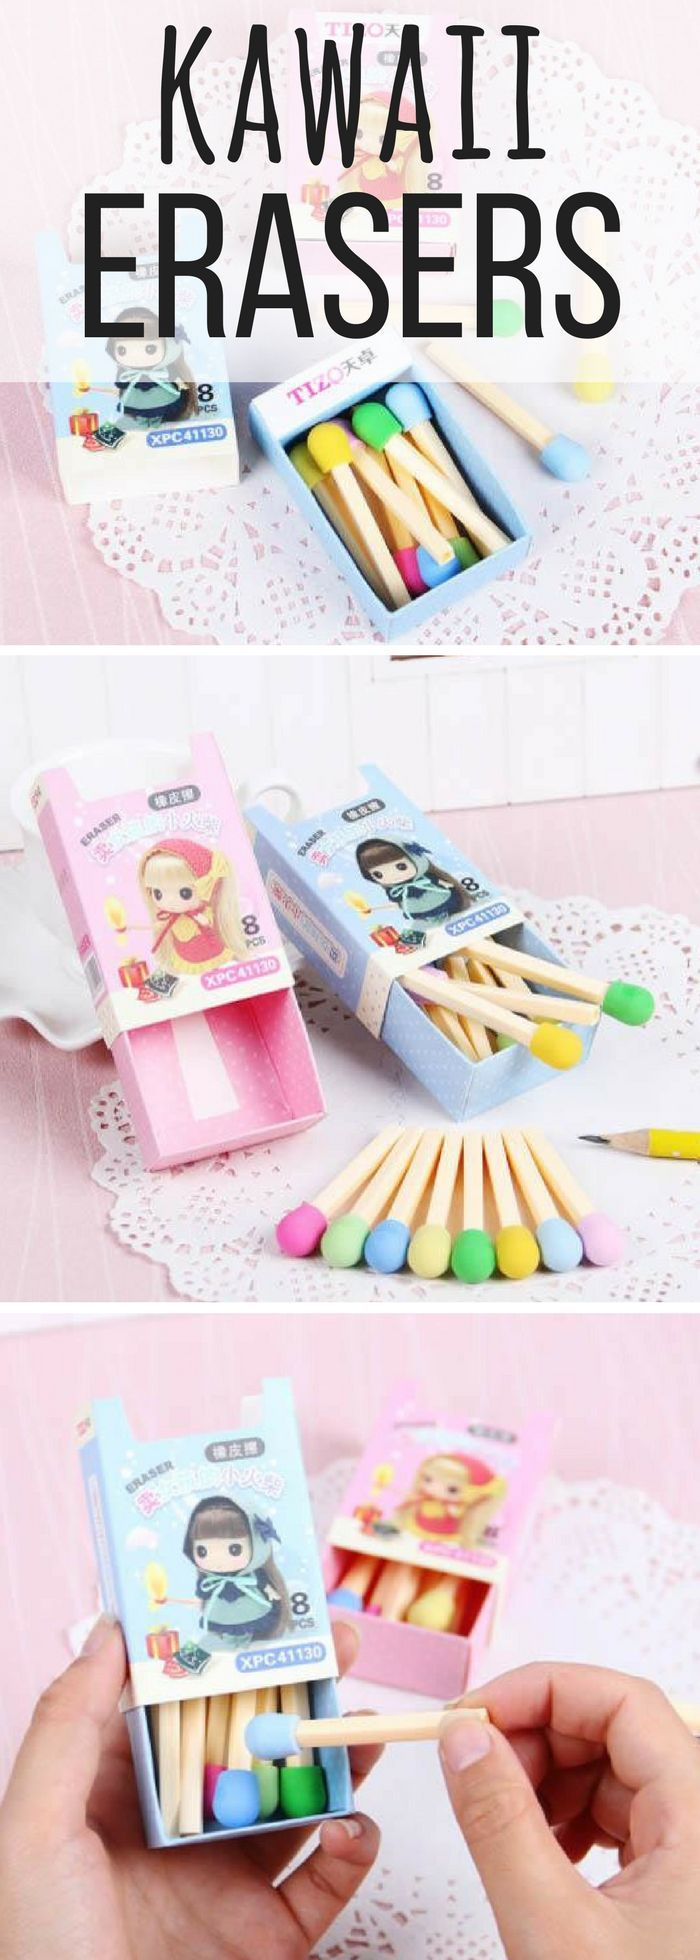 Omg I love them! Little pastel matchstick erasers in the cutest boxes! Kawaii~~~! These are too cute to use. I wish I could go stationery shopping in Japan one day. #ad #etsyfinds #stationery #kawaii